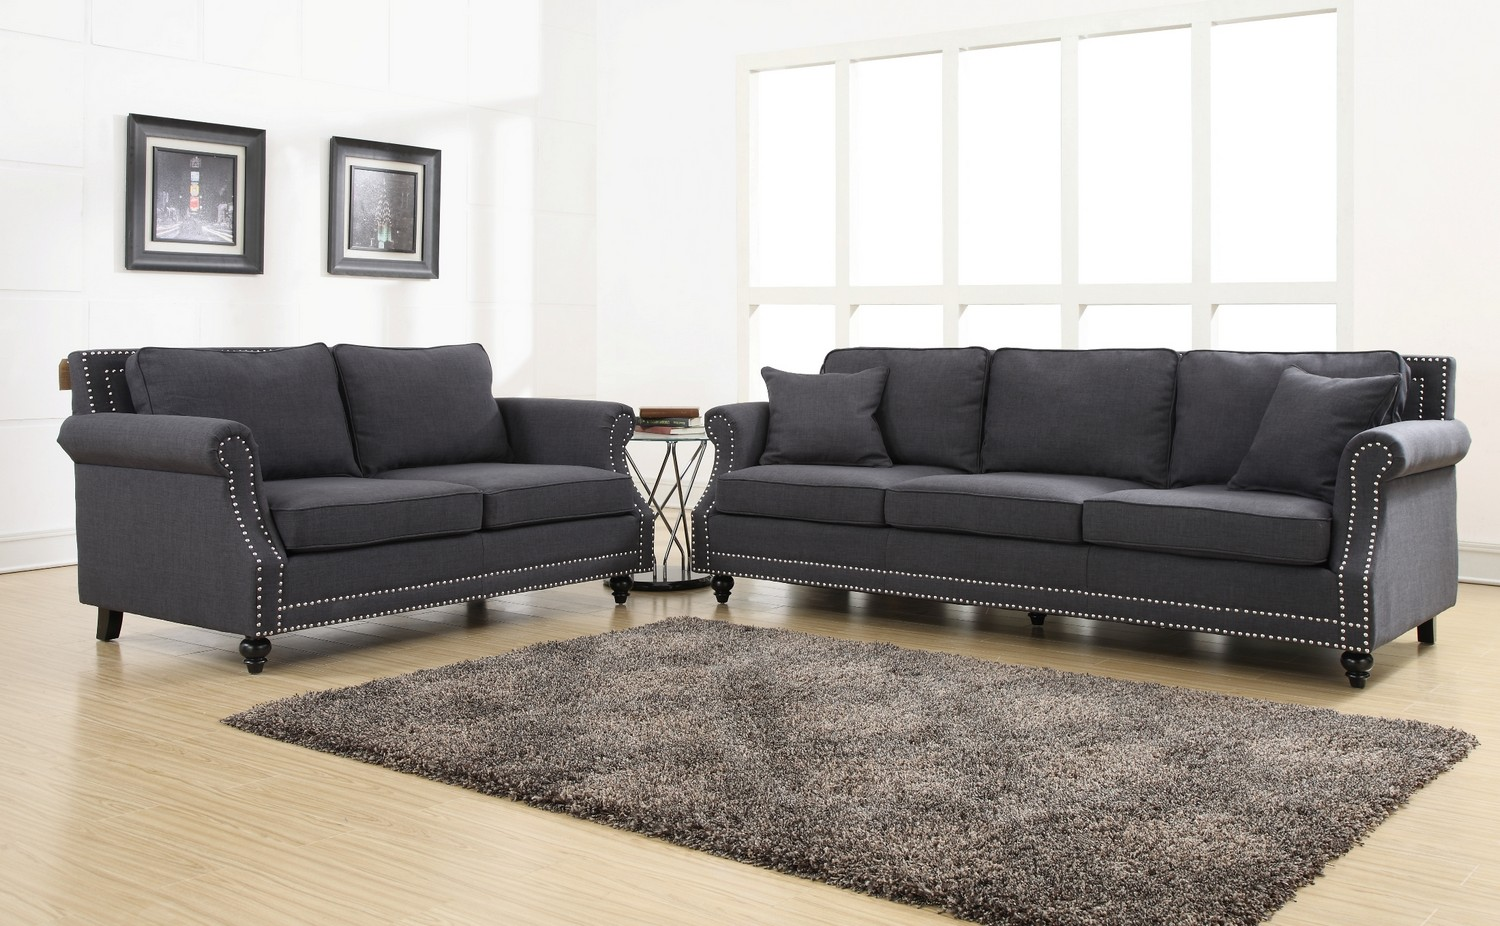 TOV Furniture Camden Grey Linen Living Room Set